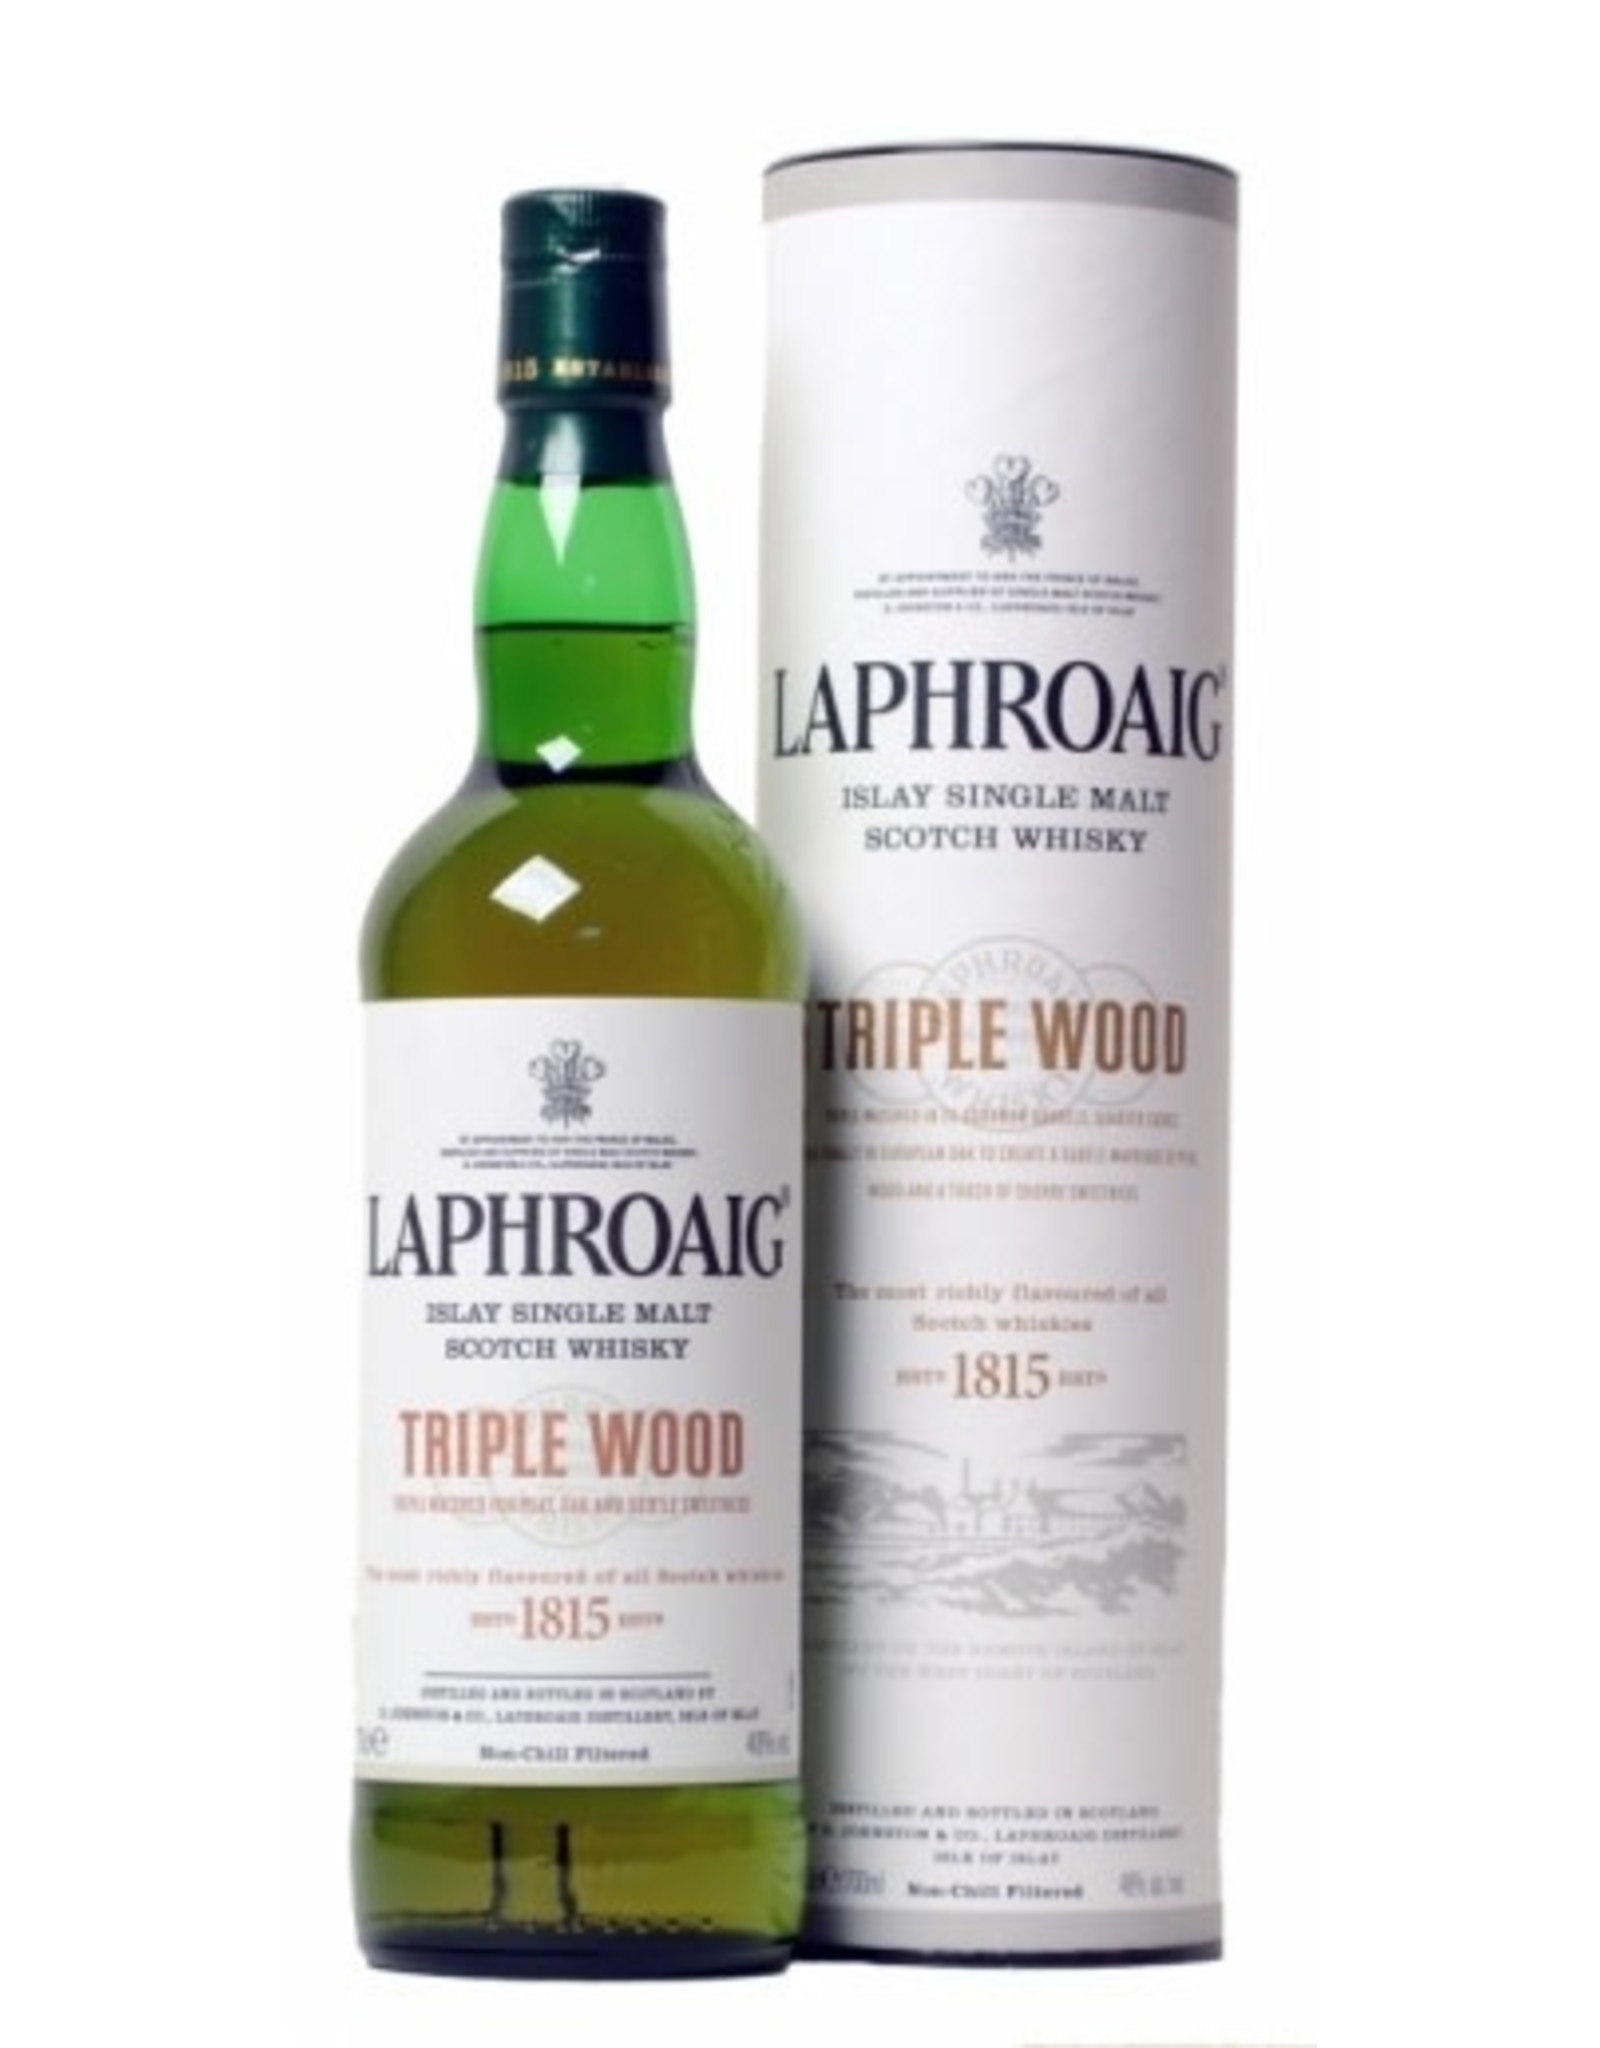 LAPHROAIG TRIPLE WOOD SCOTCH